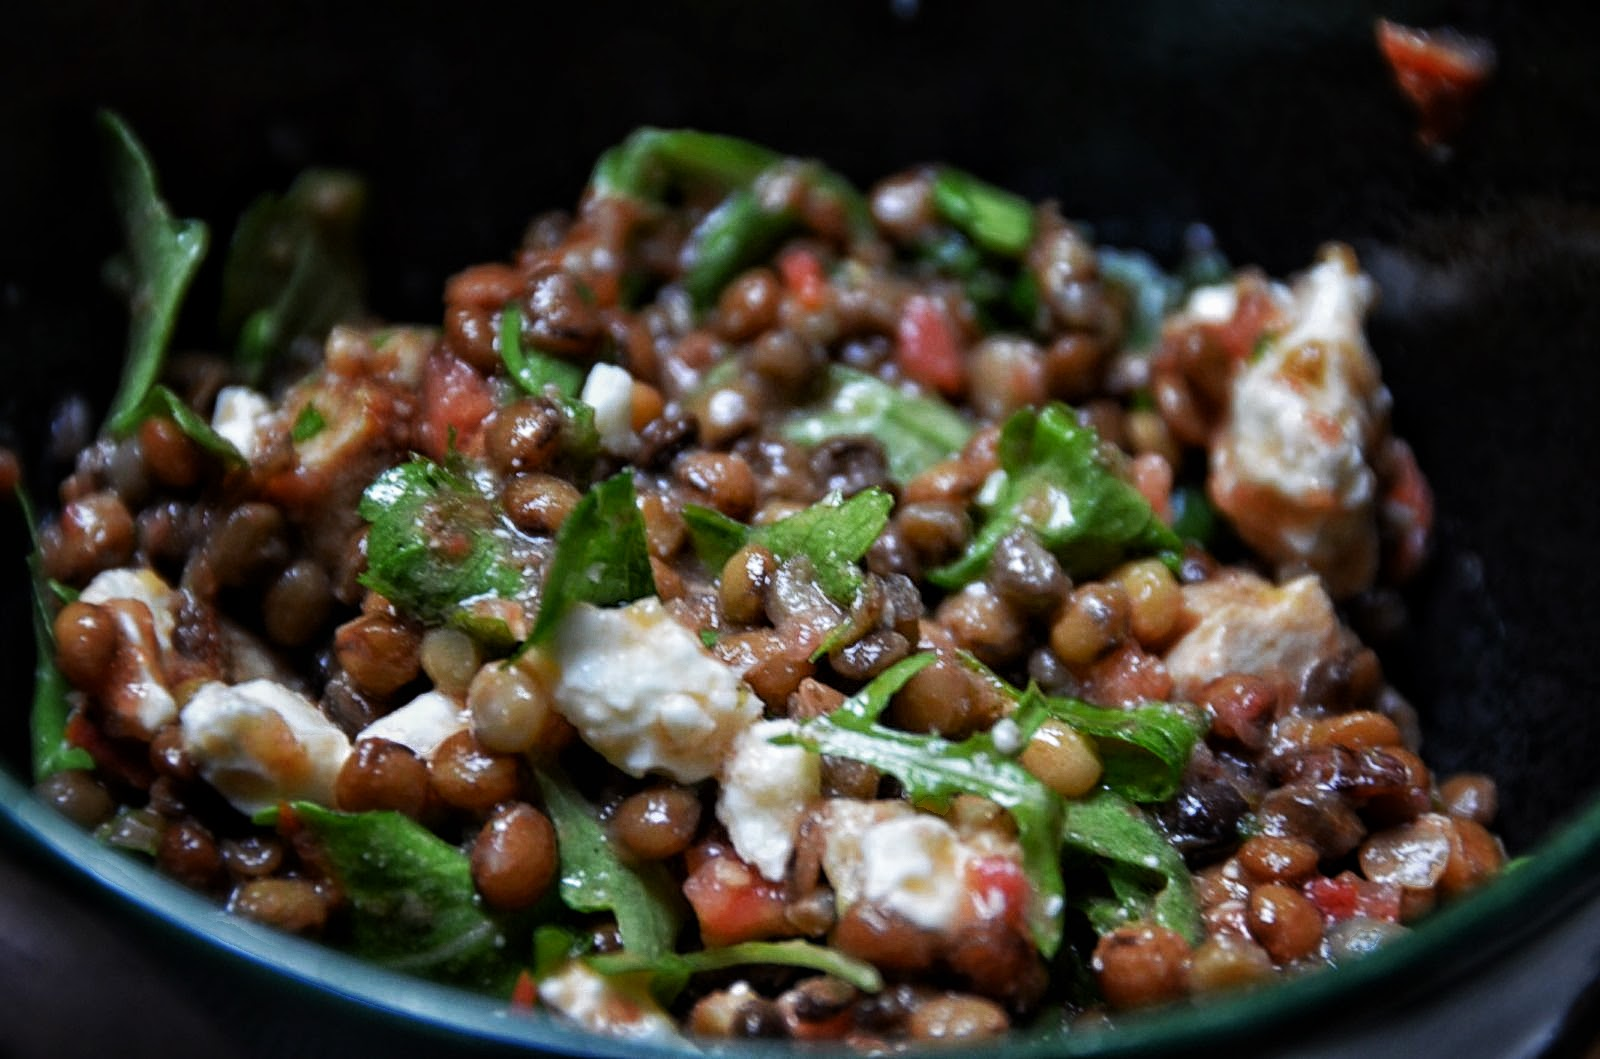 Warm Lentil Salad with Feta | Cheesy Pennies